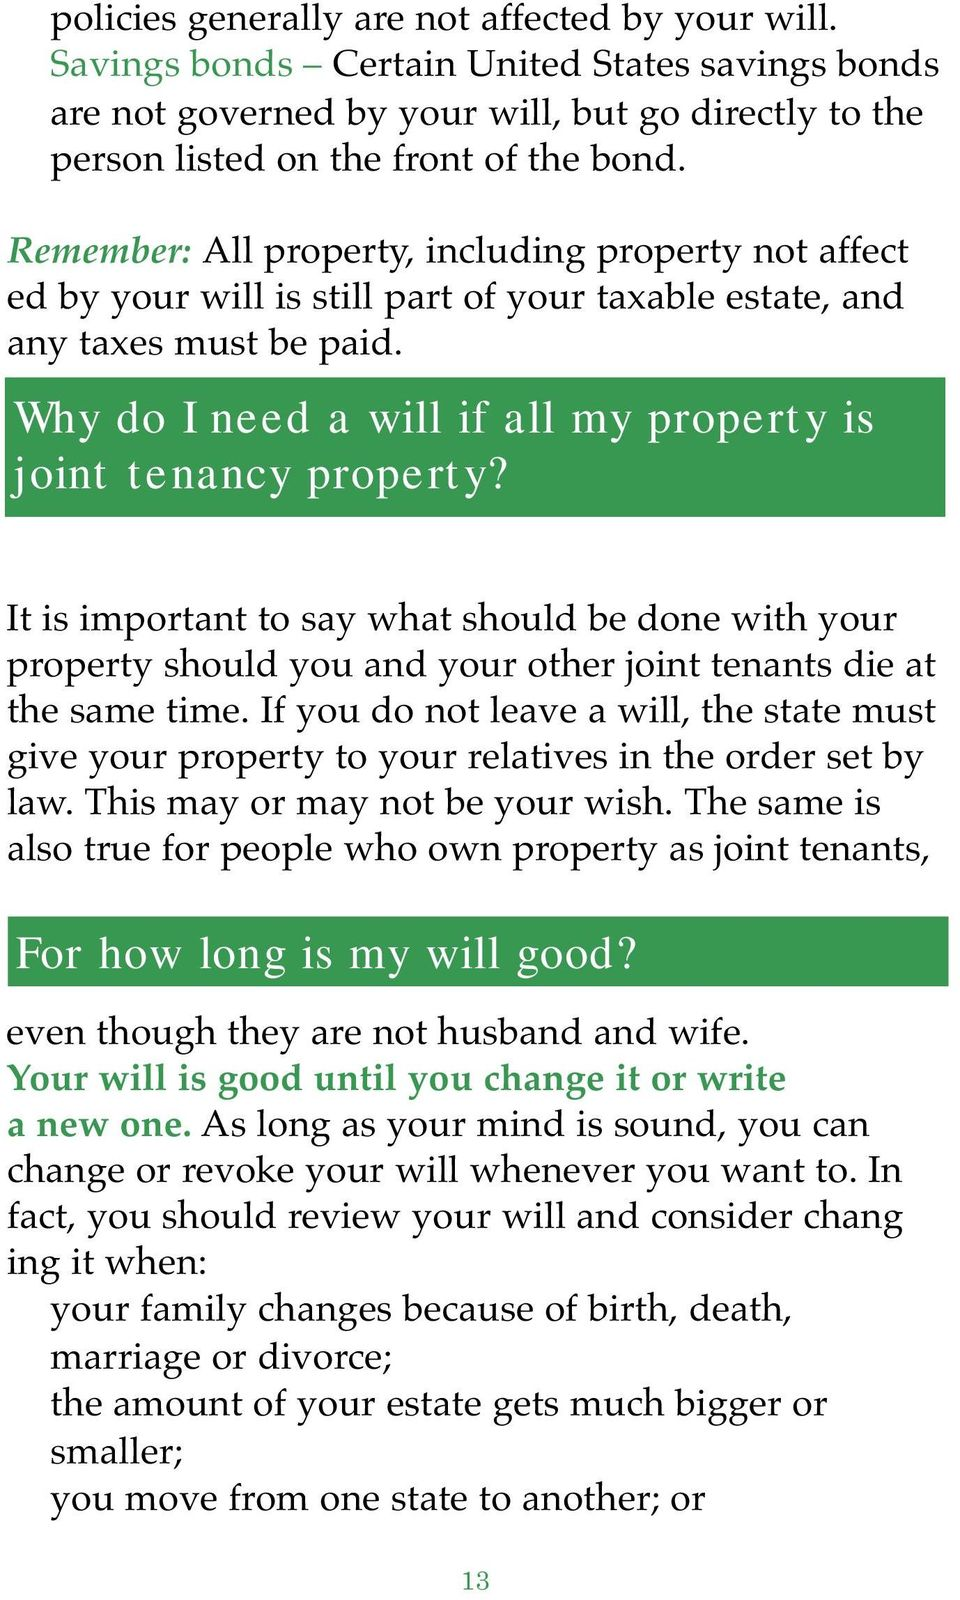 Why do I need a will if all my property is joint tenancy property? It is important to say what should be done with your property should you and your other joint tenants die at the same time.